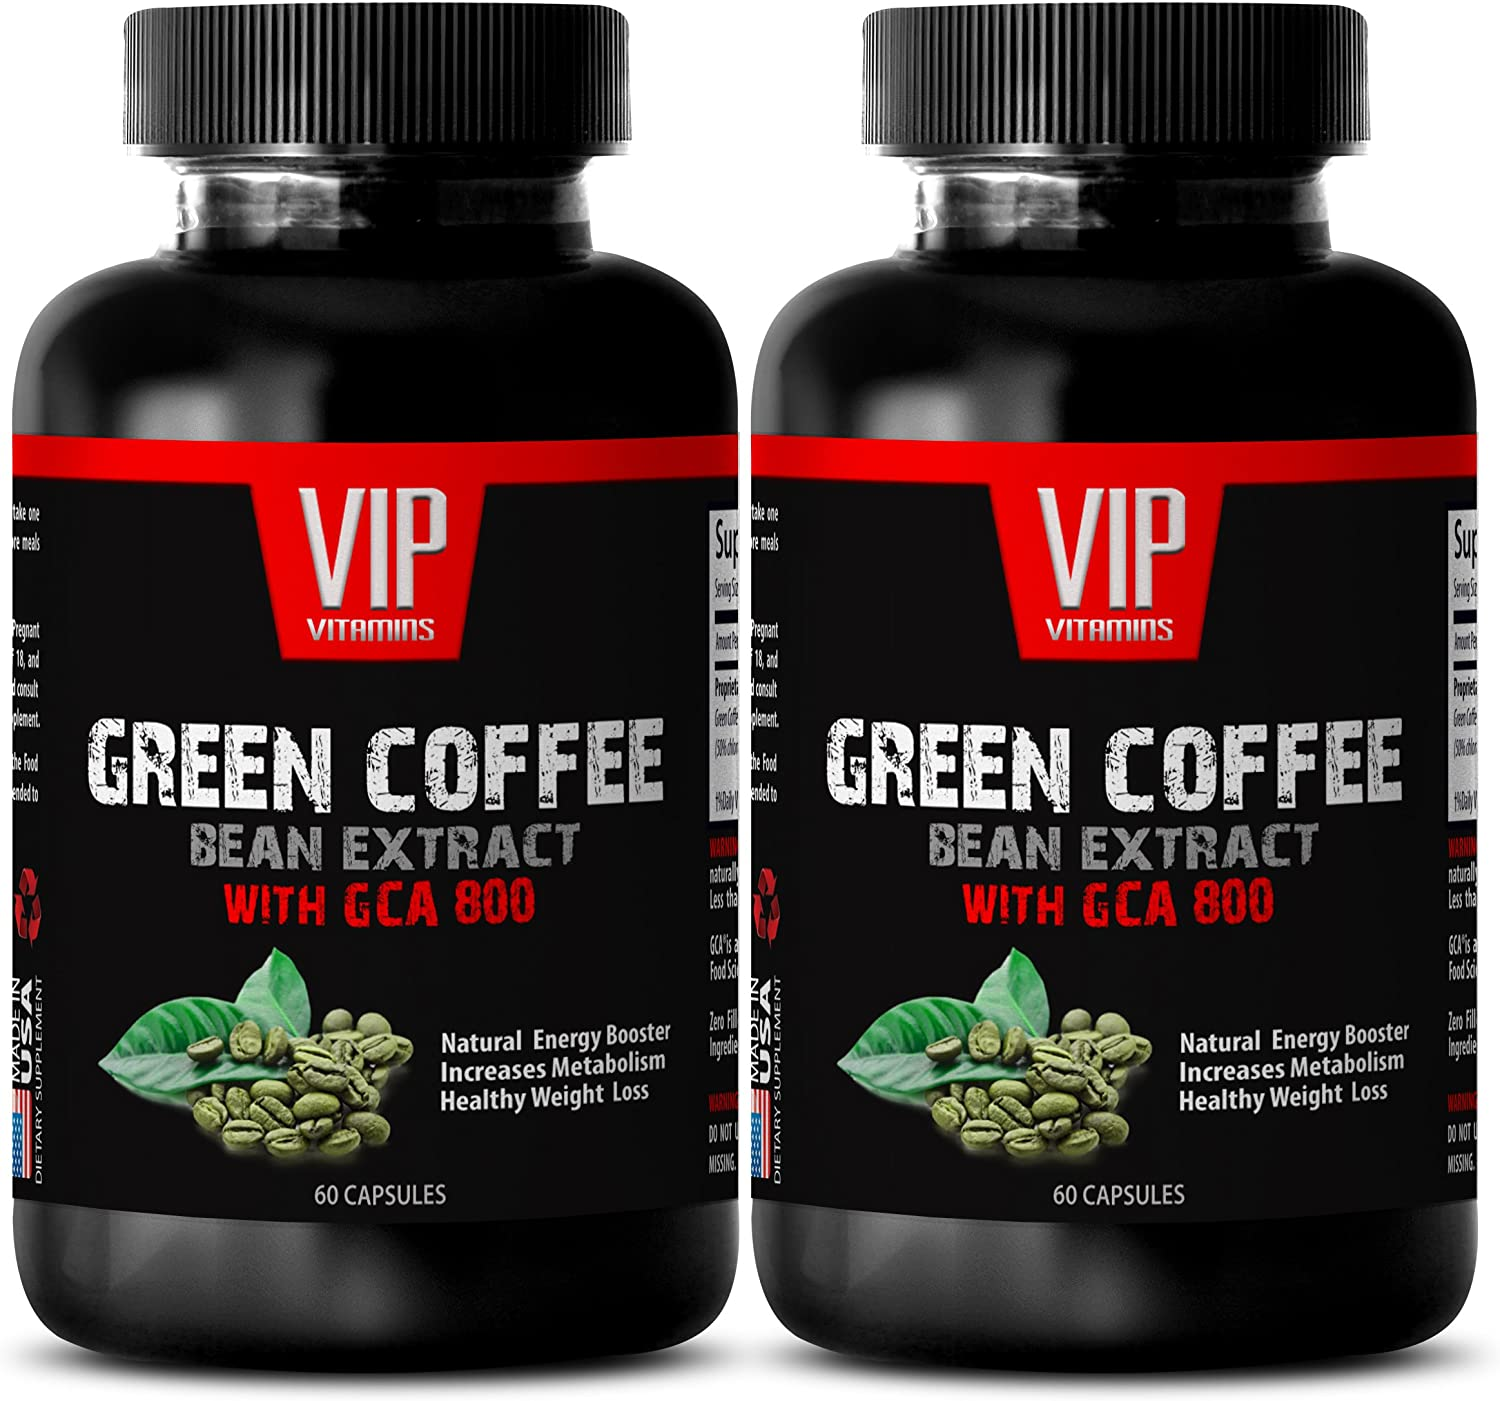 Weight Loss Pills for Women That Work Fast Exercise C no Green - Max 53% OFF Large discharge sale